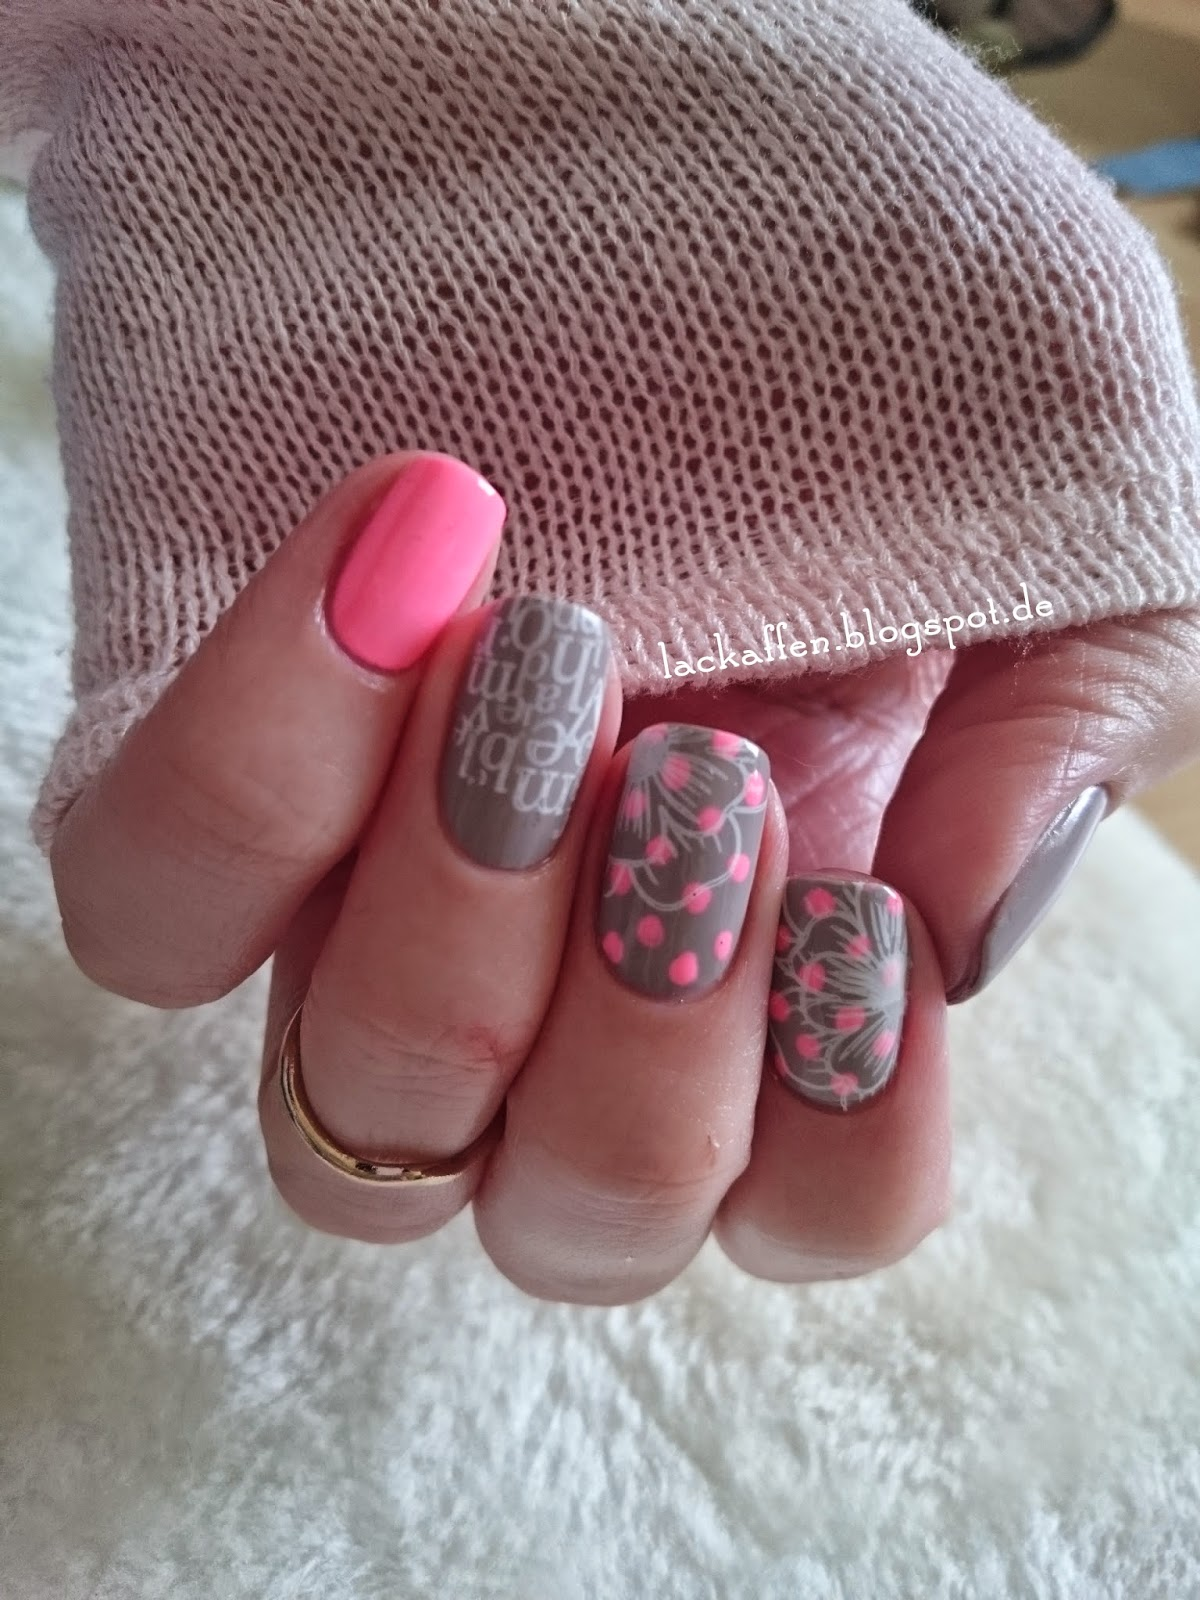 Lackaffen Pink Graue Skitte Nails